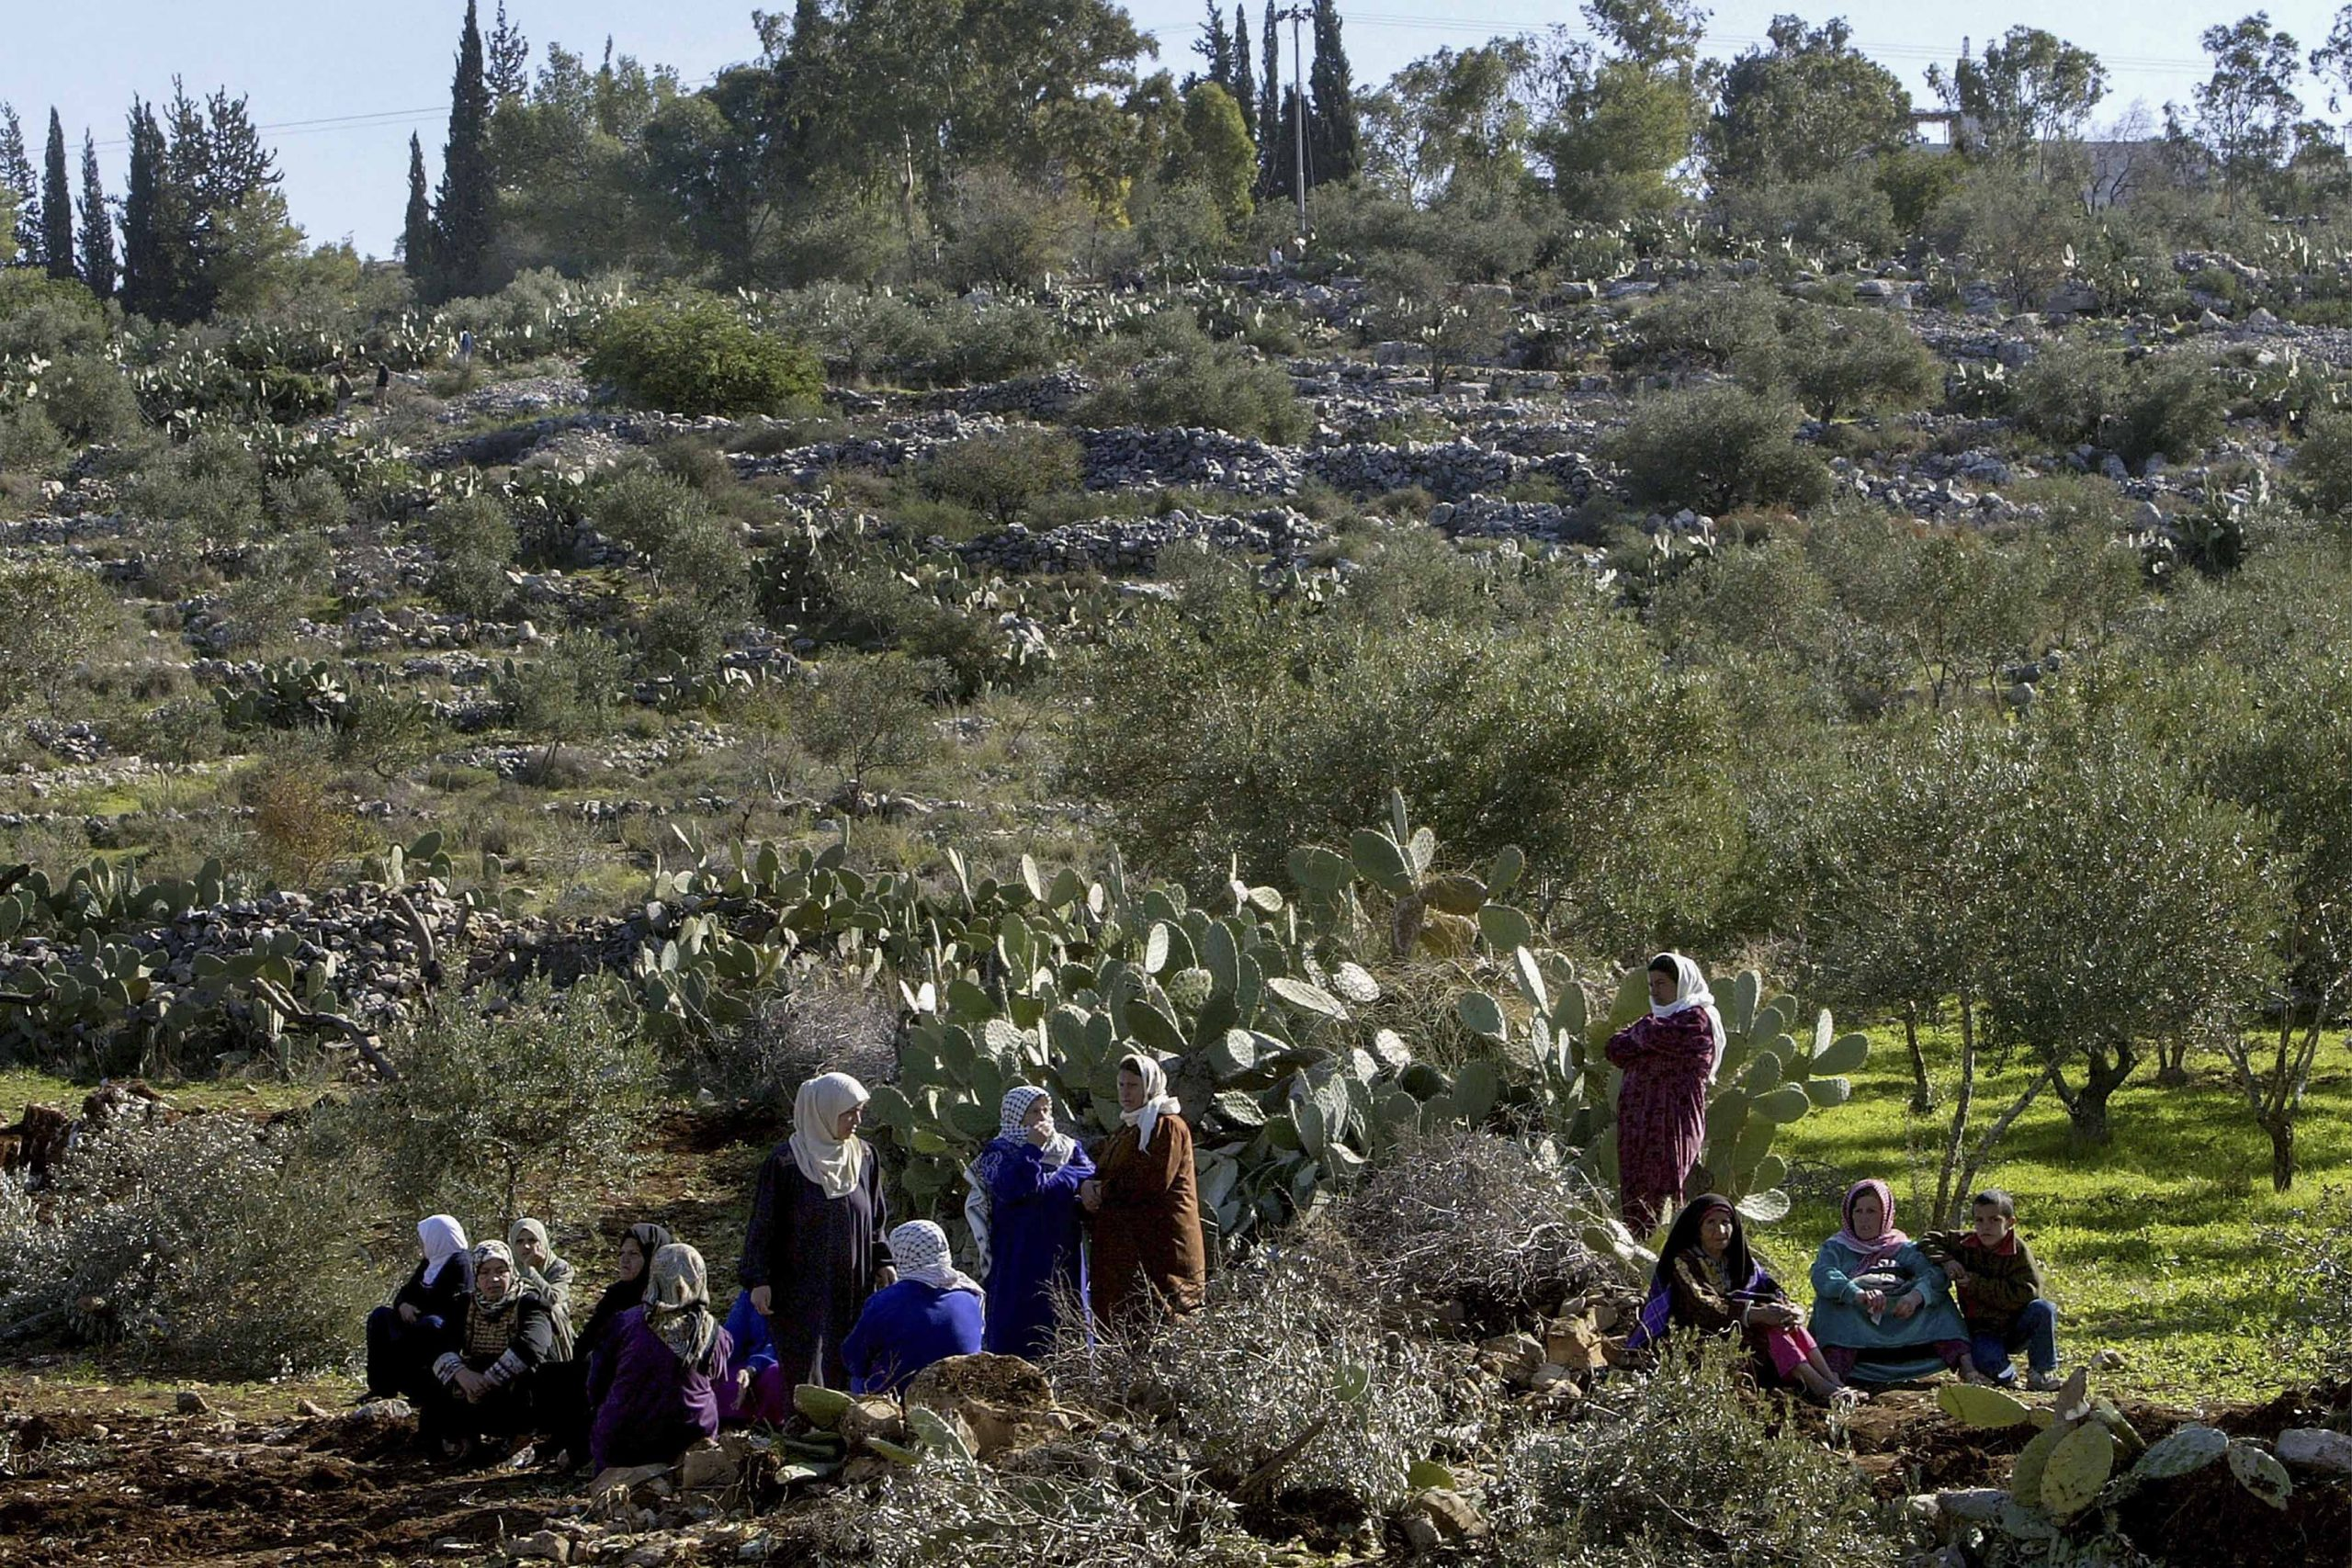 30 December 2003: Palestinian women near the West Bank village of Budrus protest the loss of their land following the construction of Israel's separation barrier. (Photograph by David Silverman/ Getty Images)